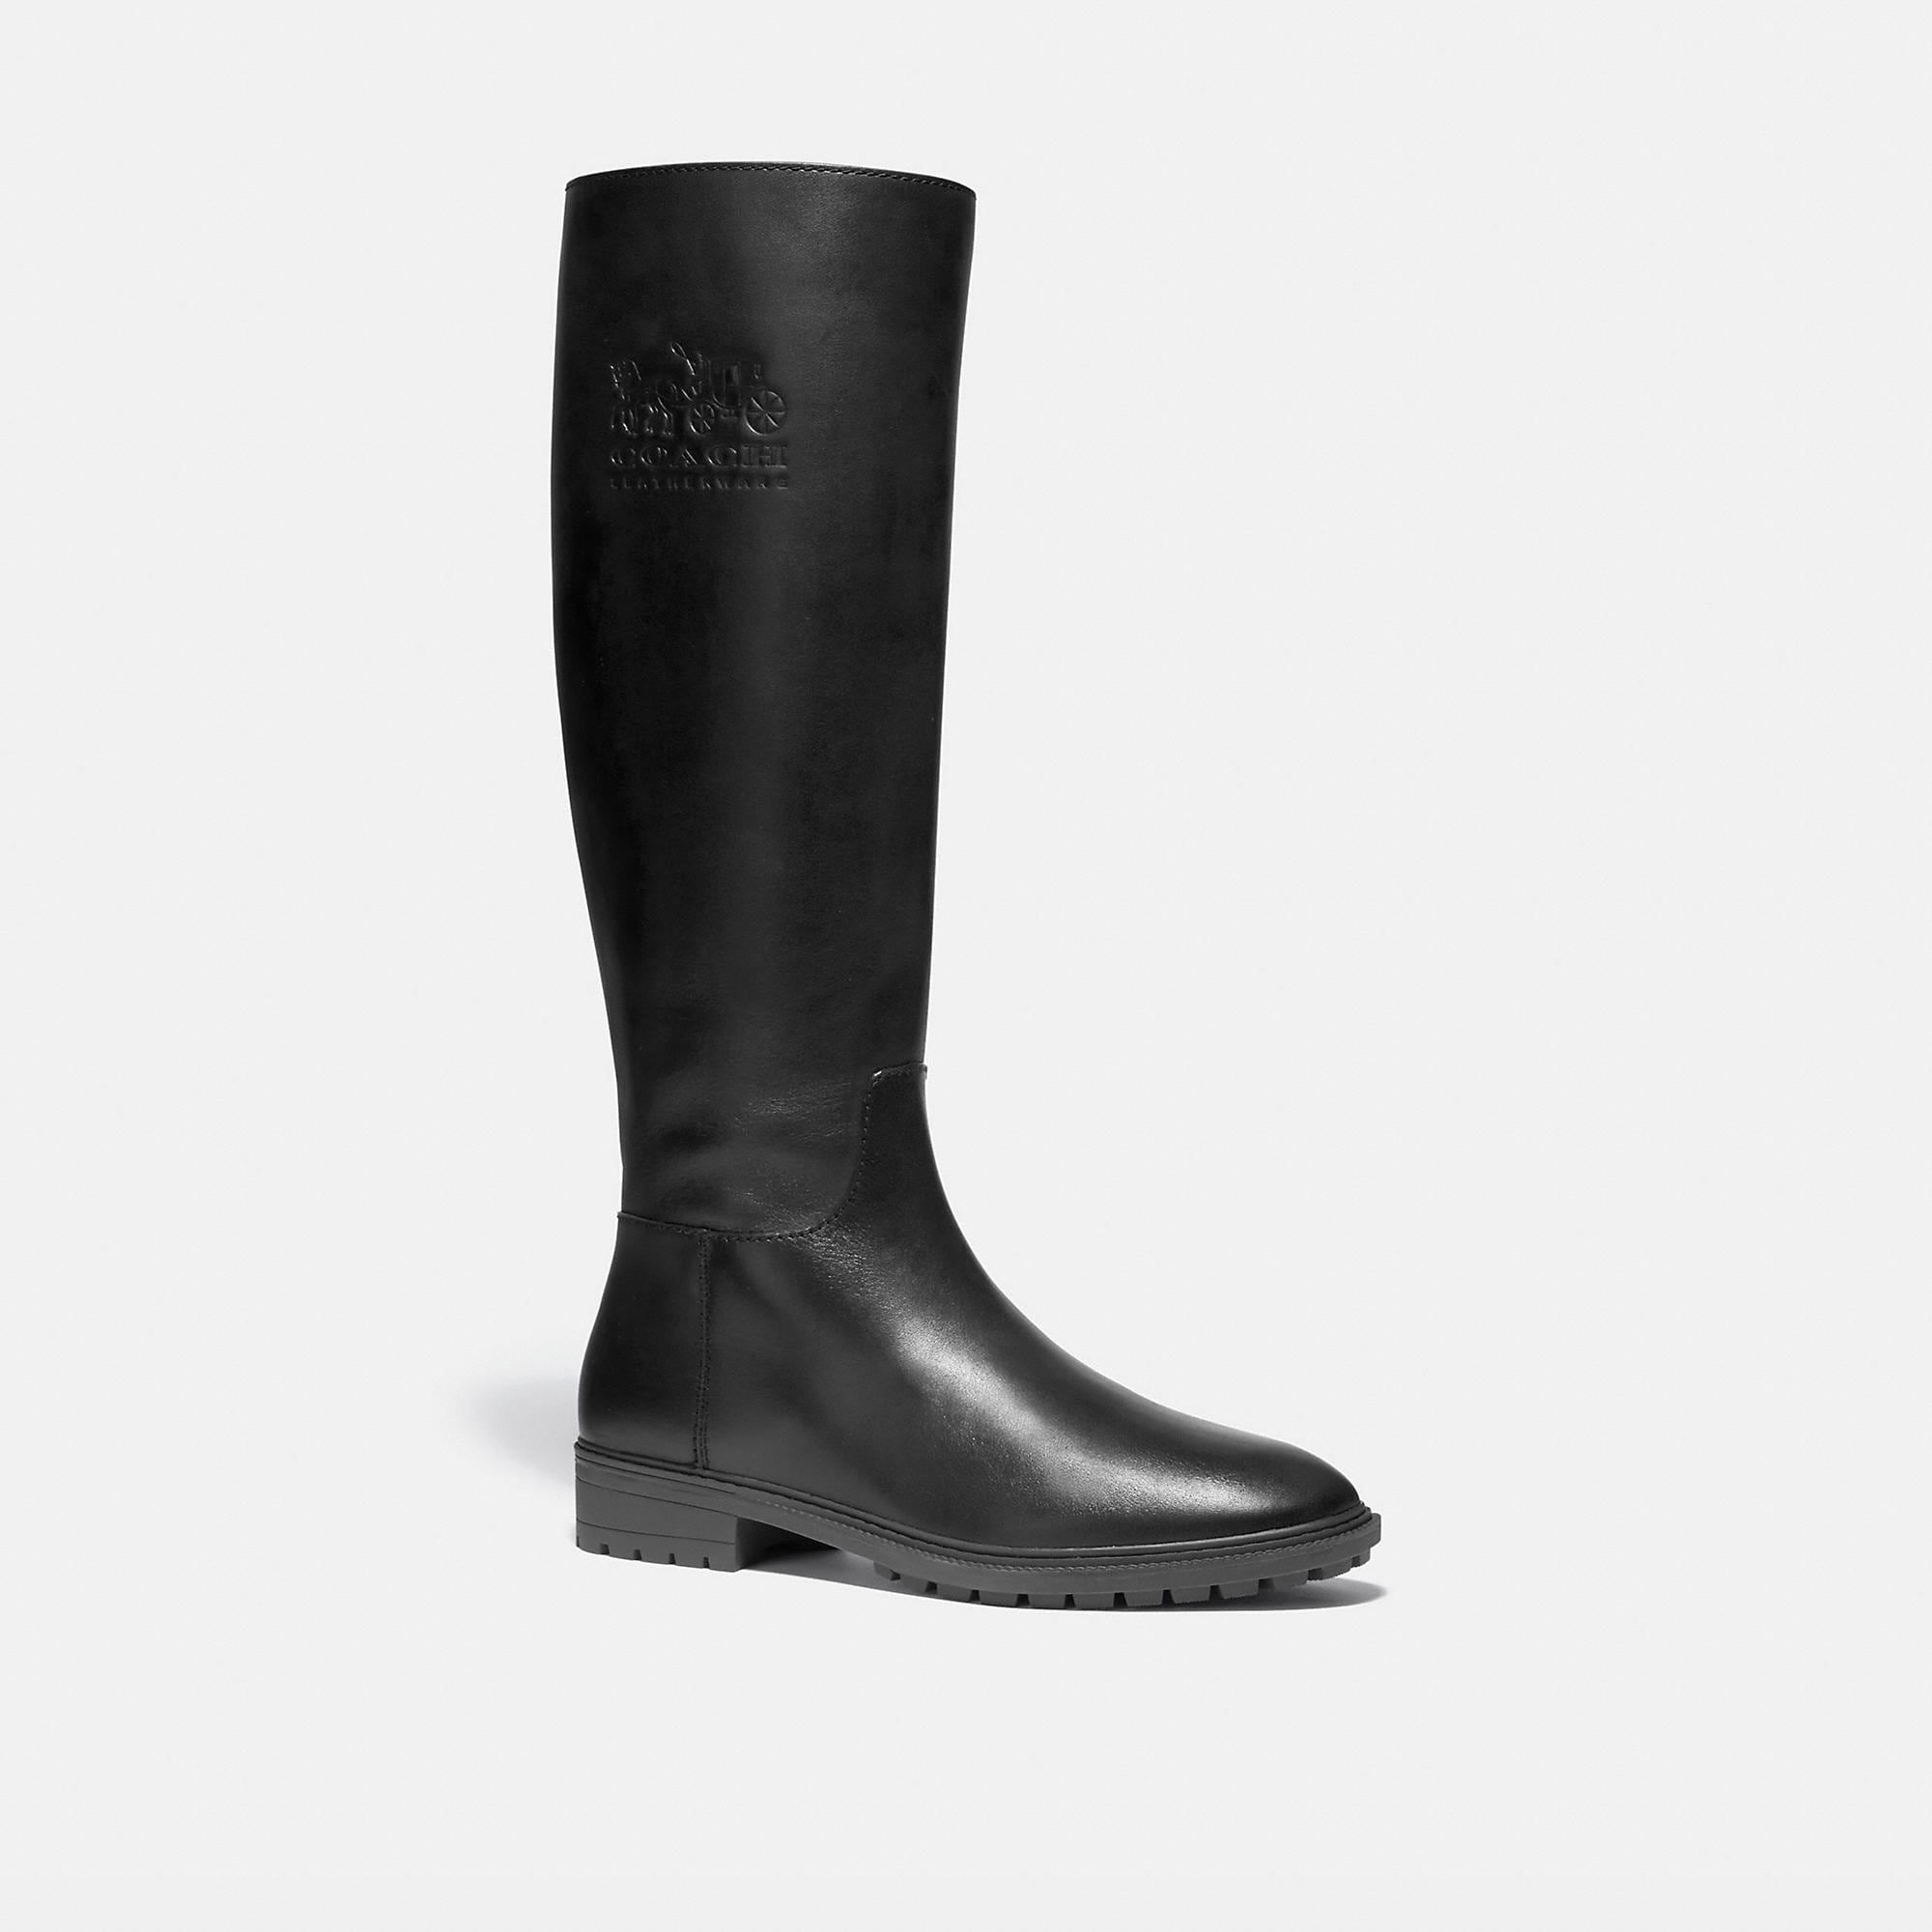 Fynn boot from coach at Supa fly mag